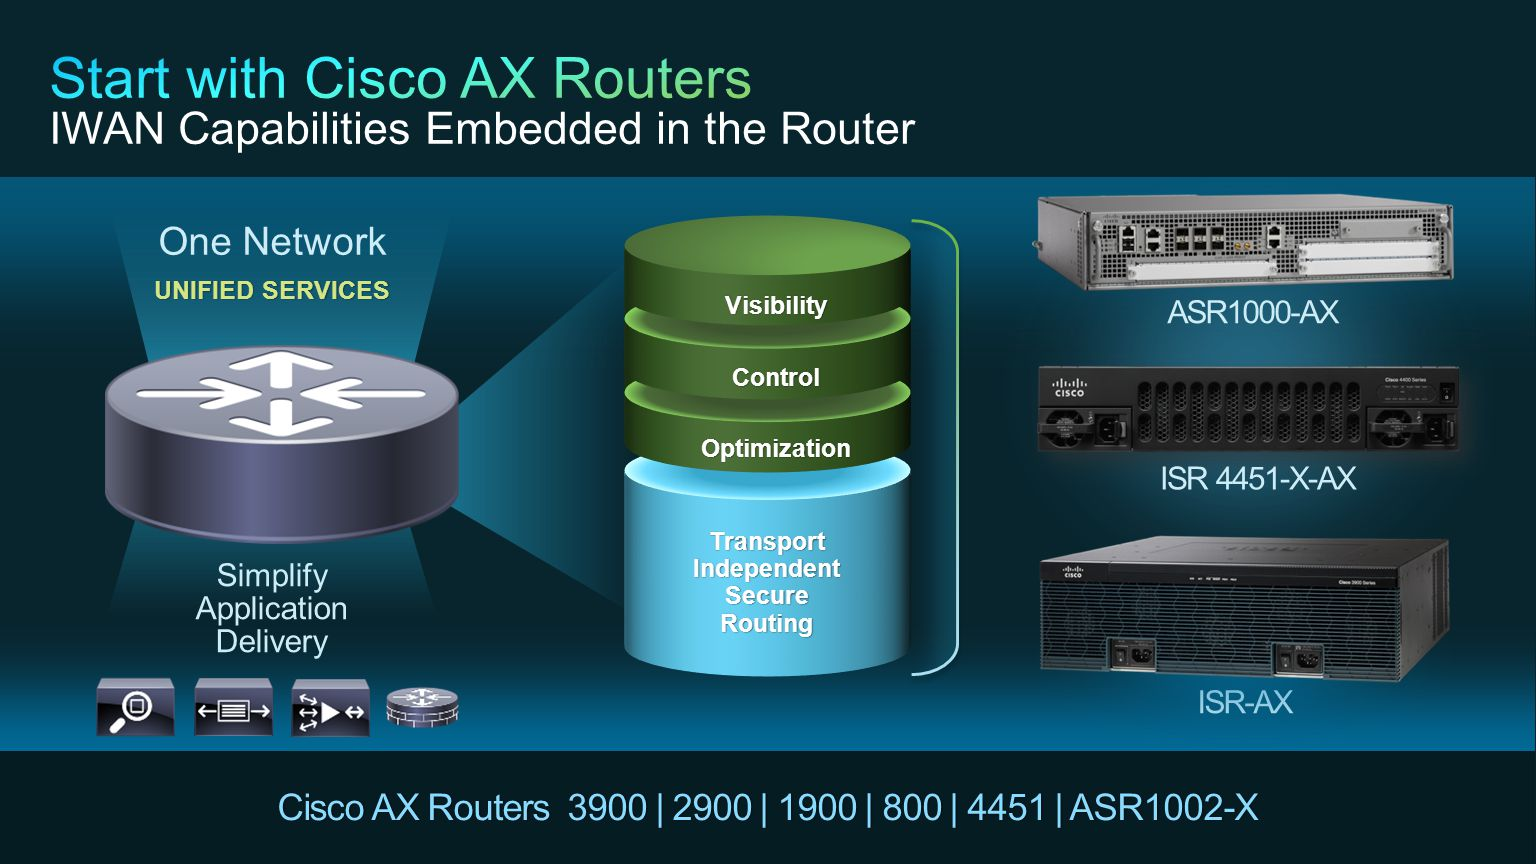 Start with Cisco AX Routers IWAN Capabilities Embedded in the Router